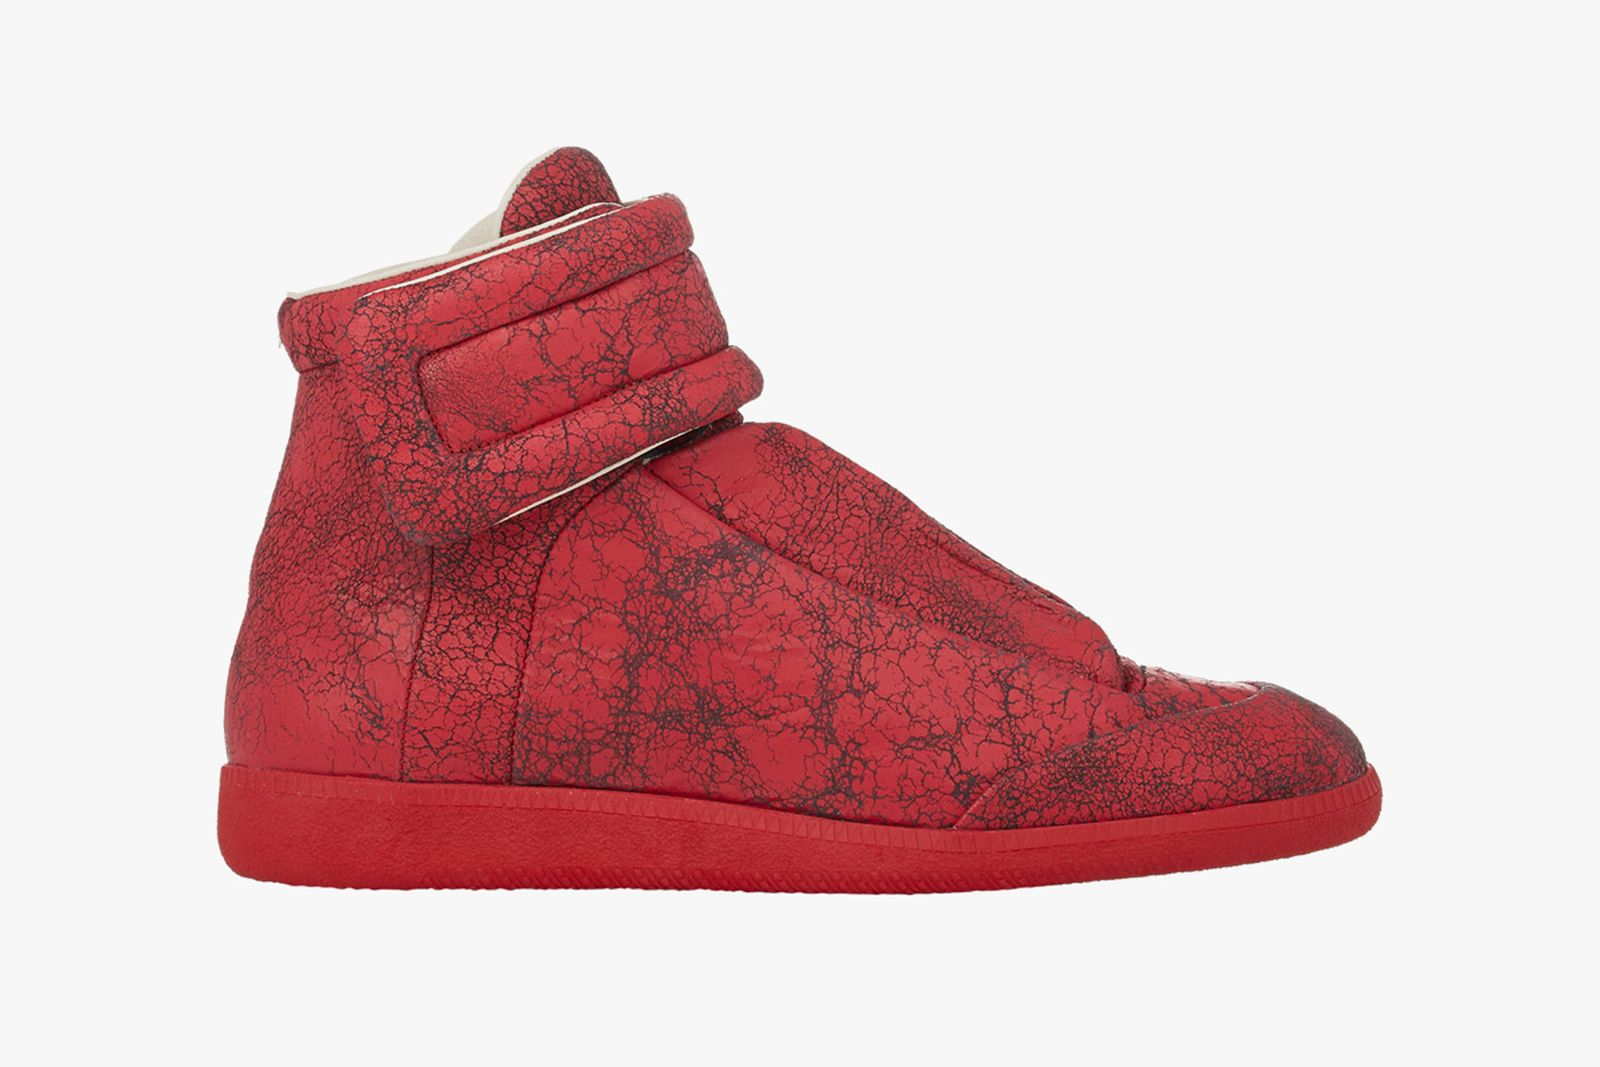 maison-margiela-future-cracked-high-top-sneaker-1